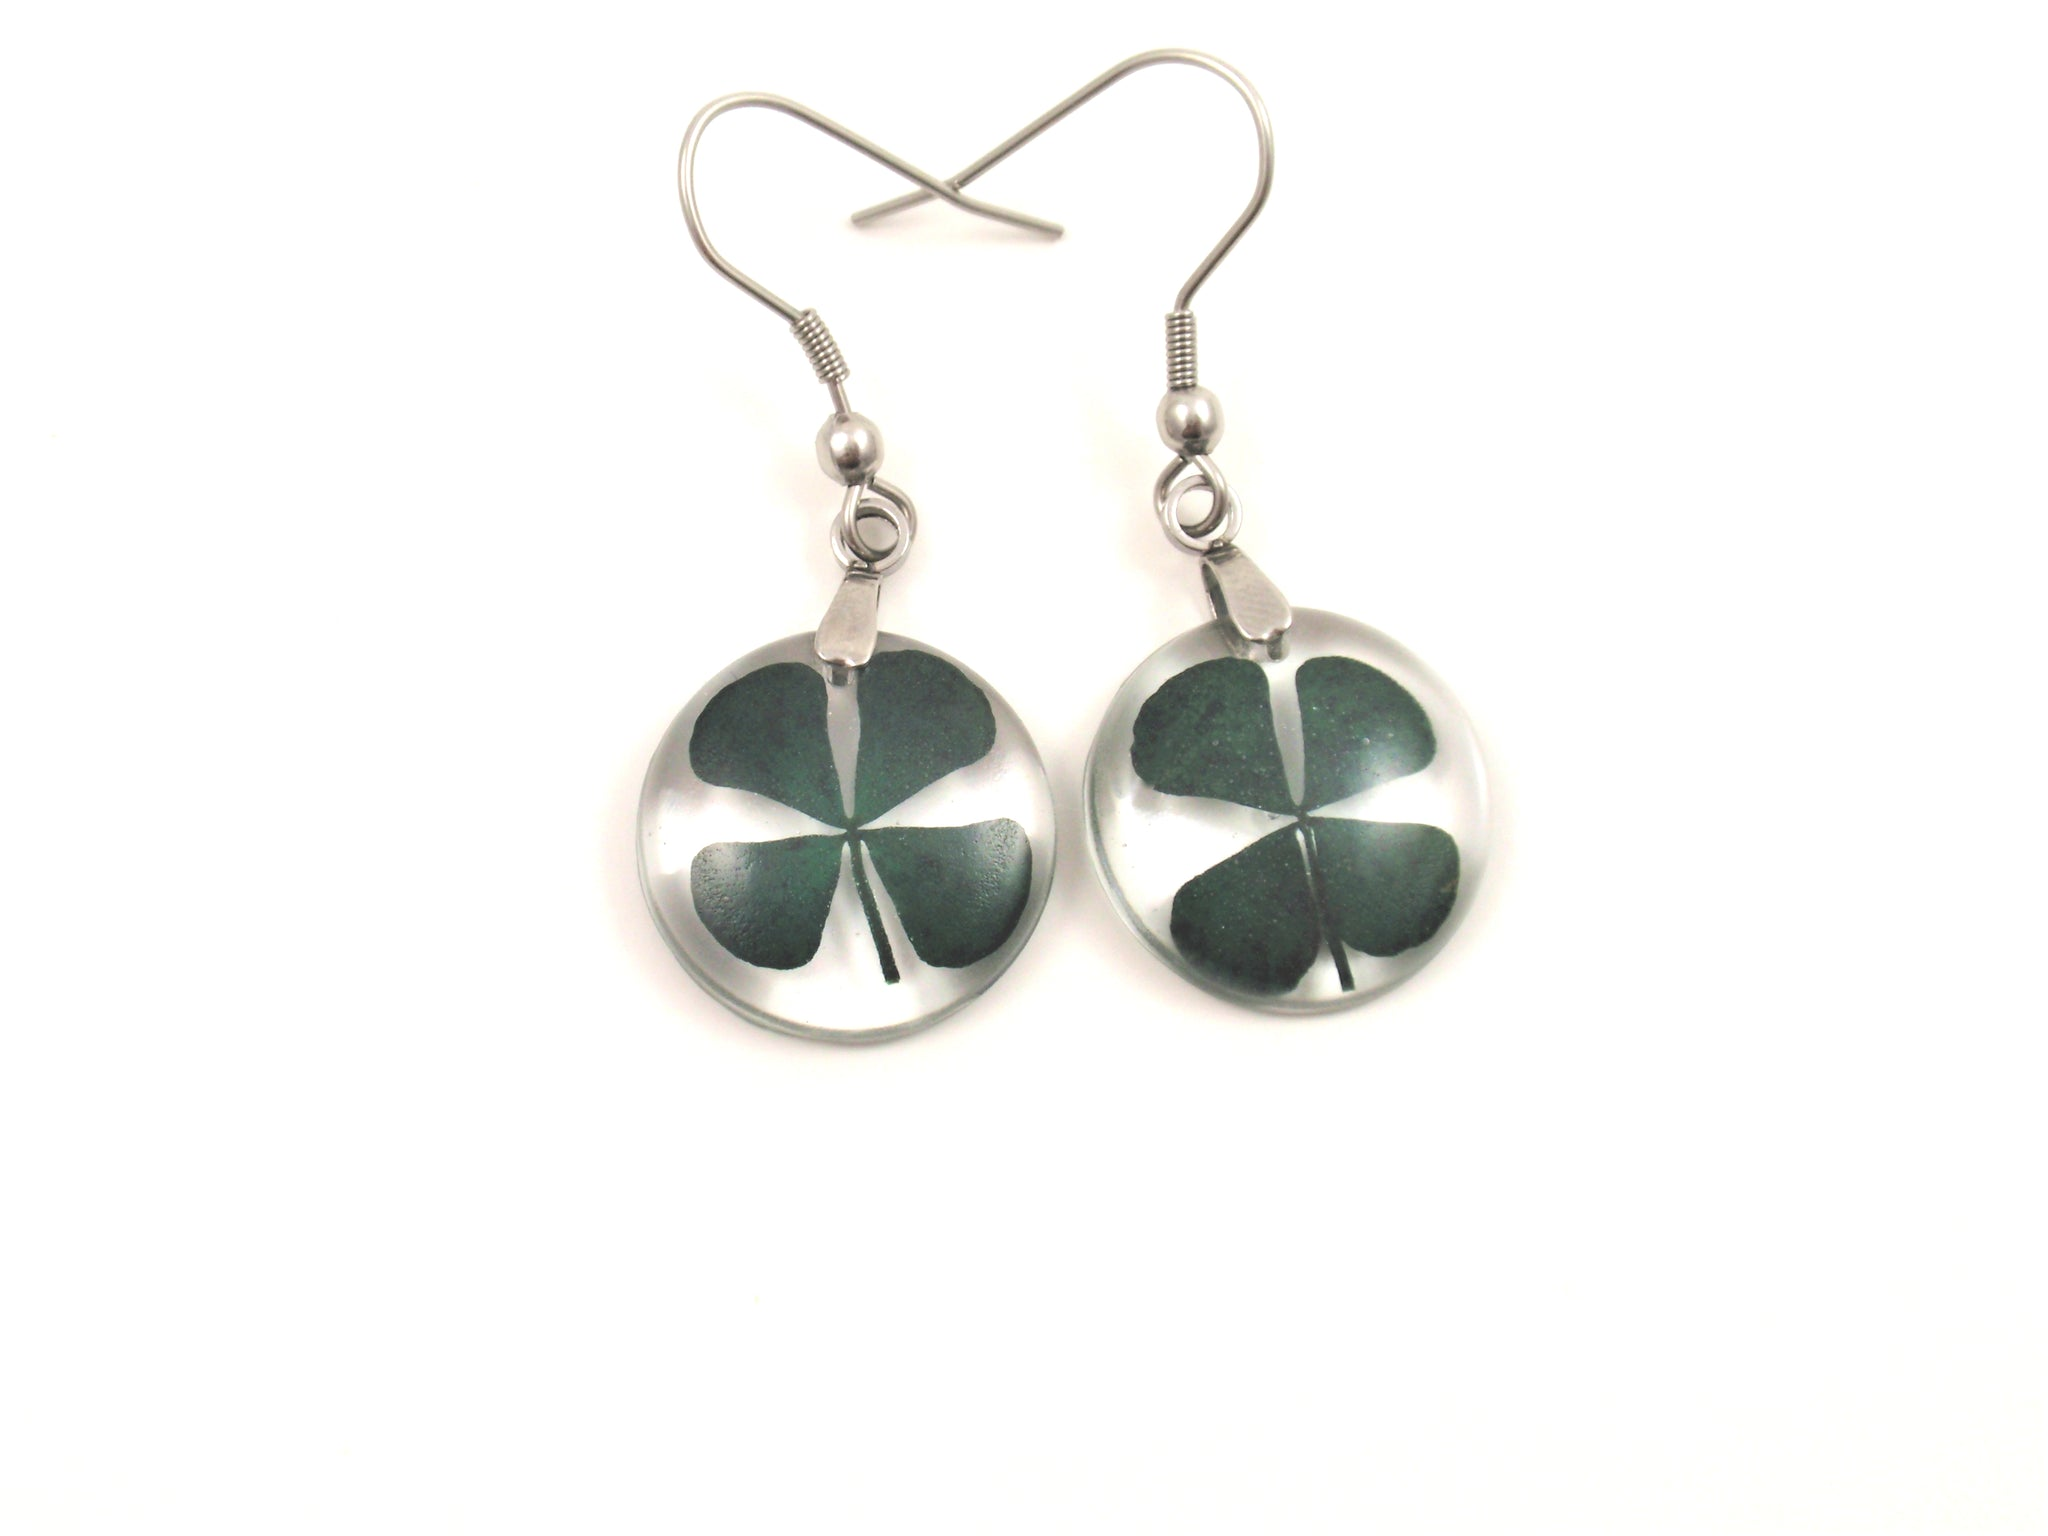 Real Four Leaf Clover Earrings